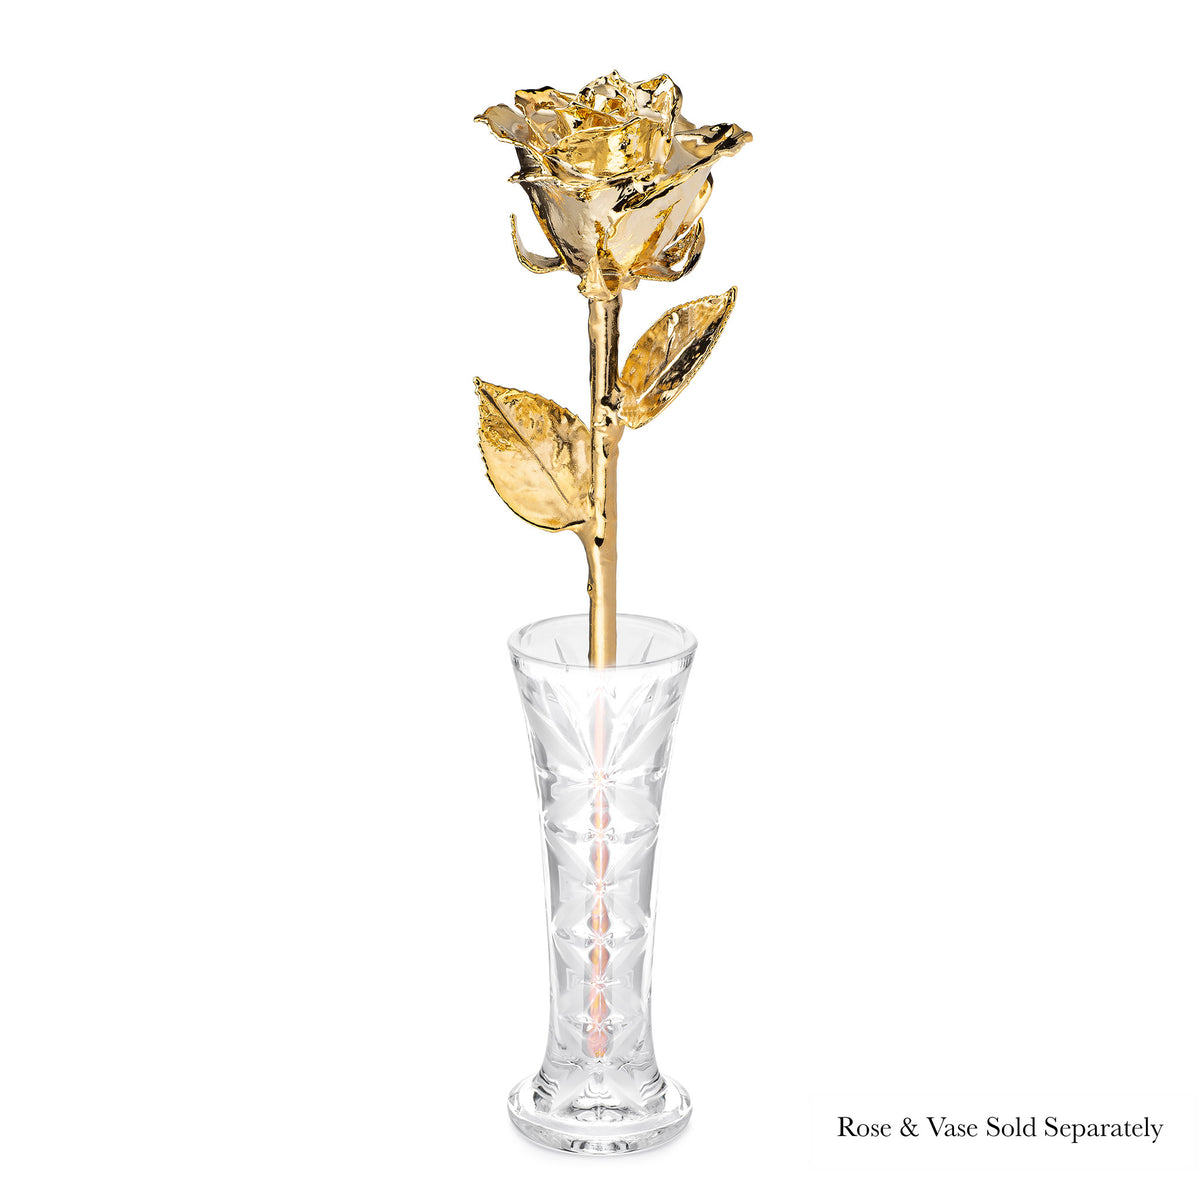 Real 24K Gold Forever Rose. Rose is fully dipped in gold. View shows the rose petals, sepals, stem, and leaves covered in 24 karat gold. The rose is shown in the optional crystal vase.